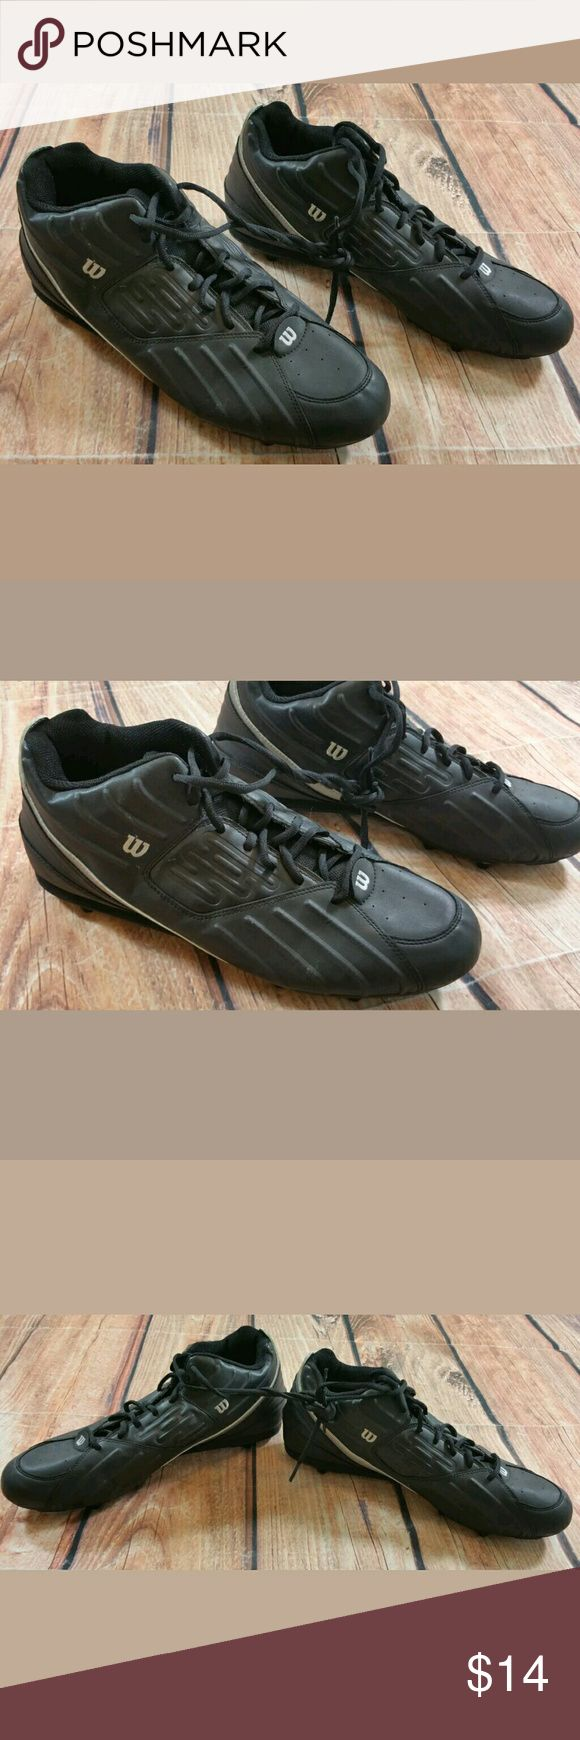 Wilsons Black Football Cleats Mens Size 14 Wilsons Black Football Cleats Mens Size 14 Condition:  Great Pre-owned condition from clean pet/smoke free home. Wilson Shoes Athletic Shoes